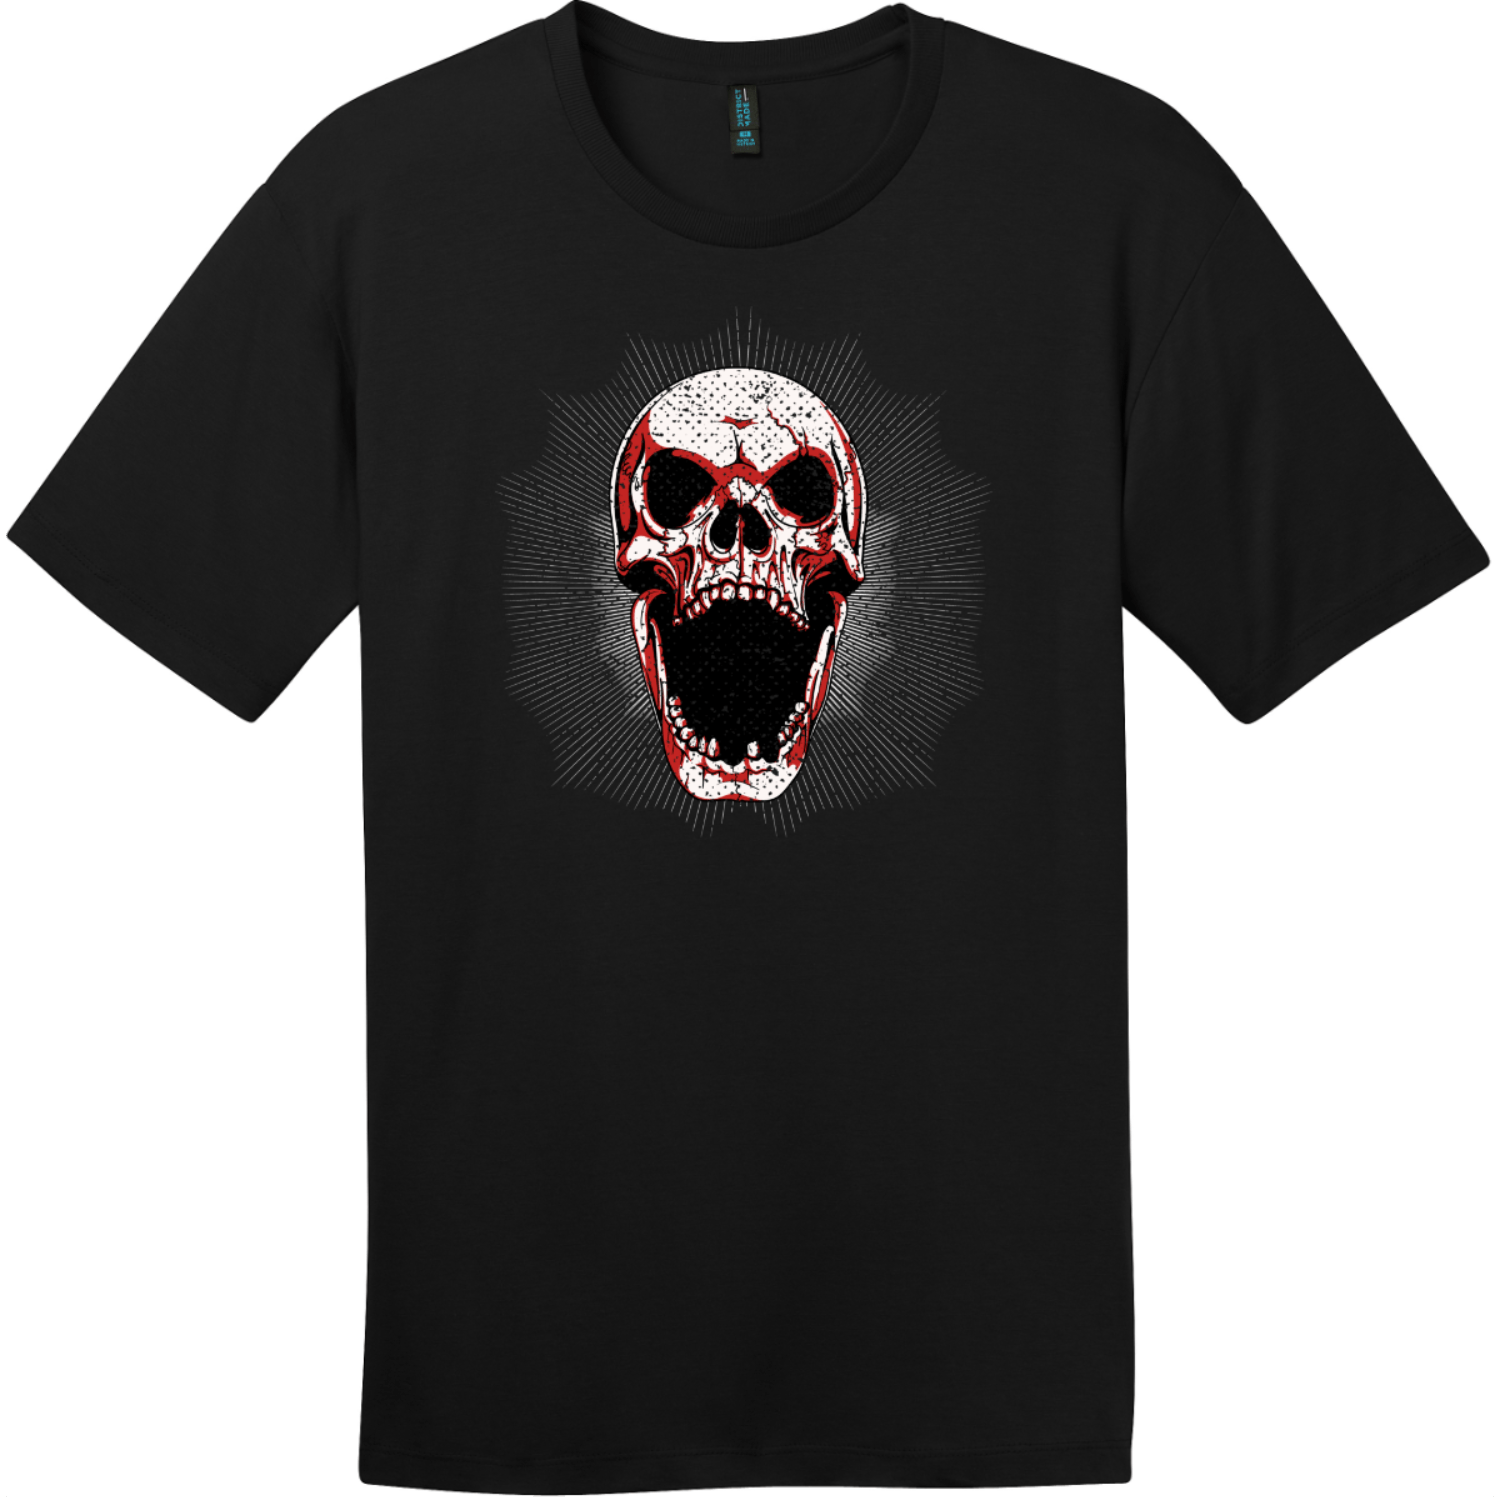 Screaming Grunge Skull T-Shirt Jet Black District Perfect Weight Tee DT104